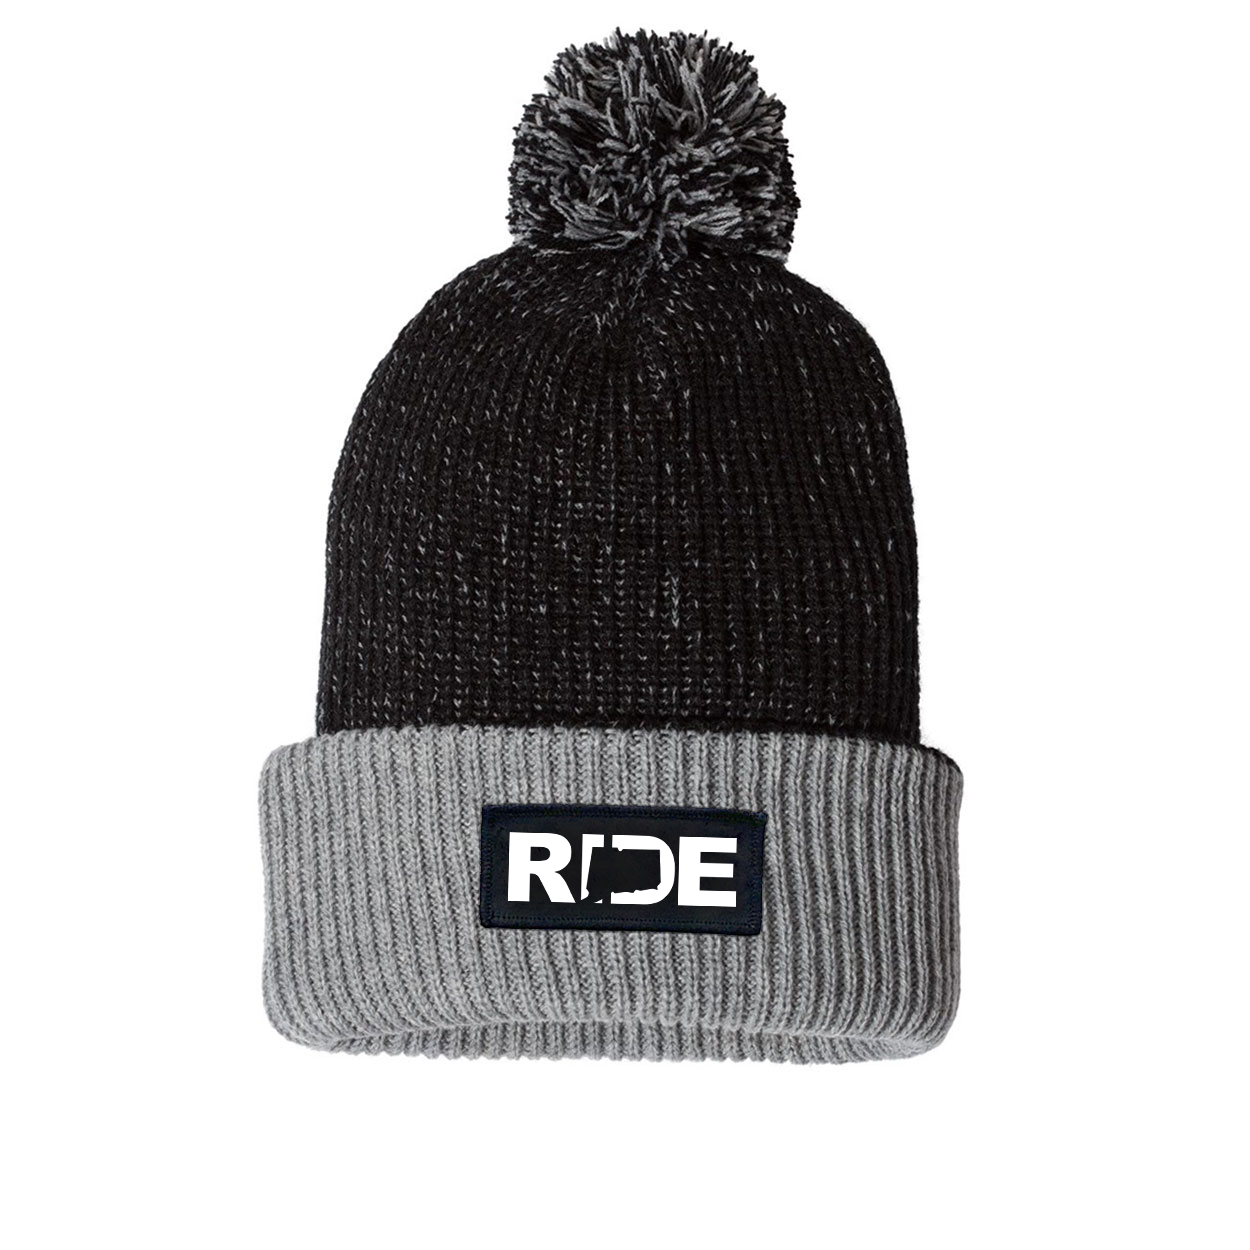 Ride Connecticut Night Out Woven Patch Roll Up Pom Knit Beanie Black/Gray (White Logo)